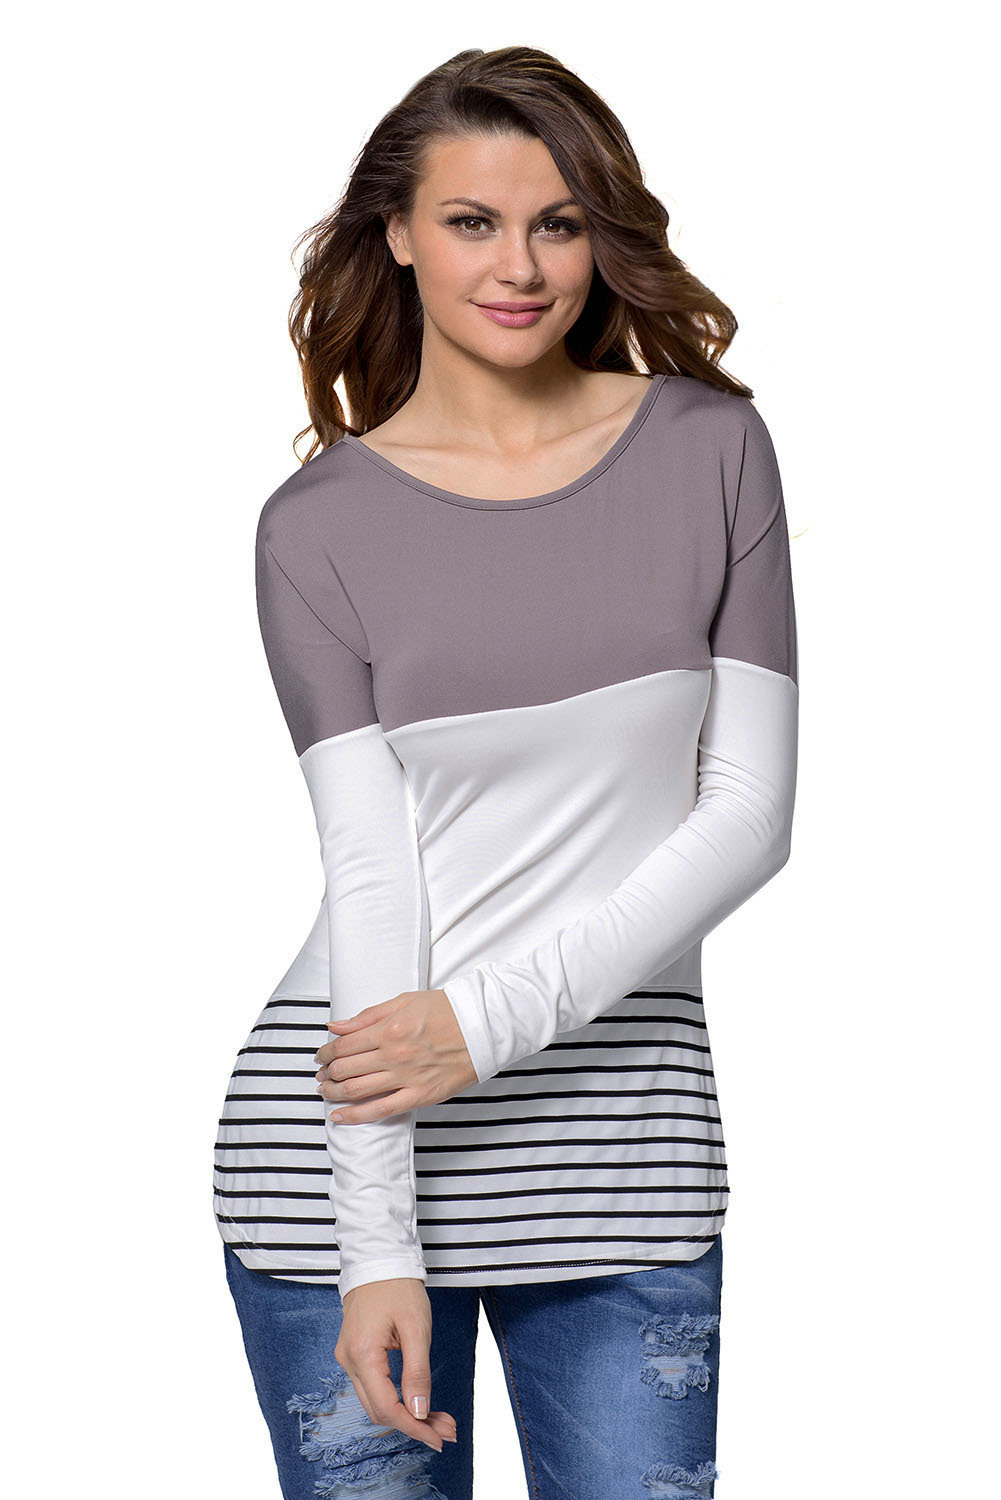 Taupe White Color Block Striped Long Sleeve Blouse Top